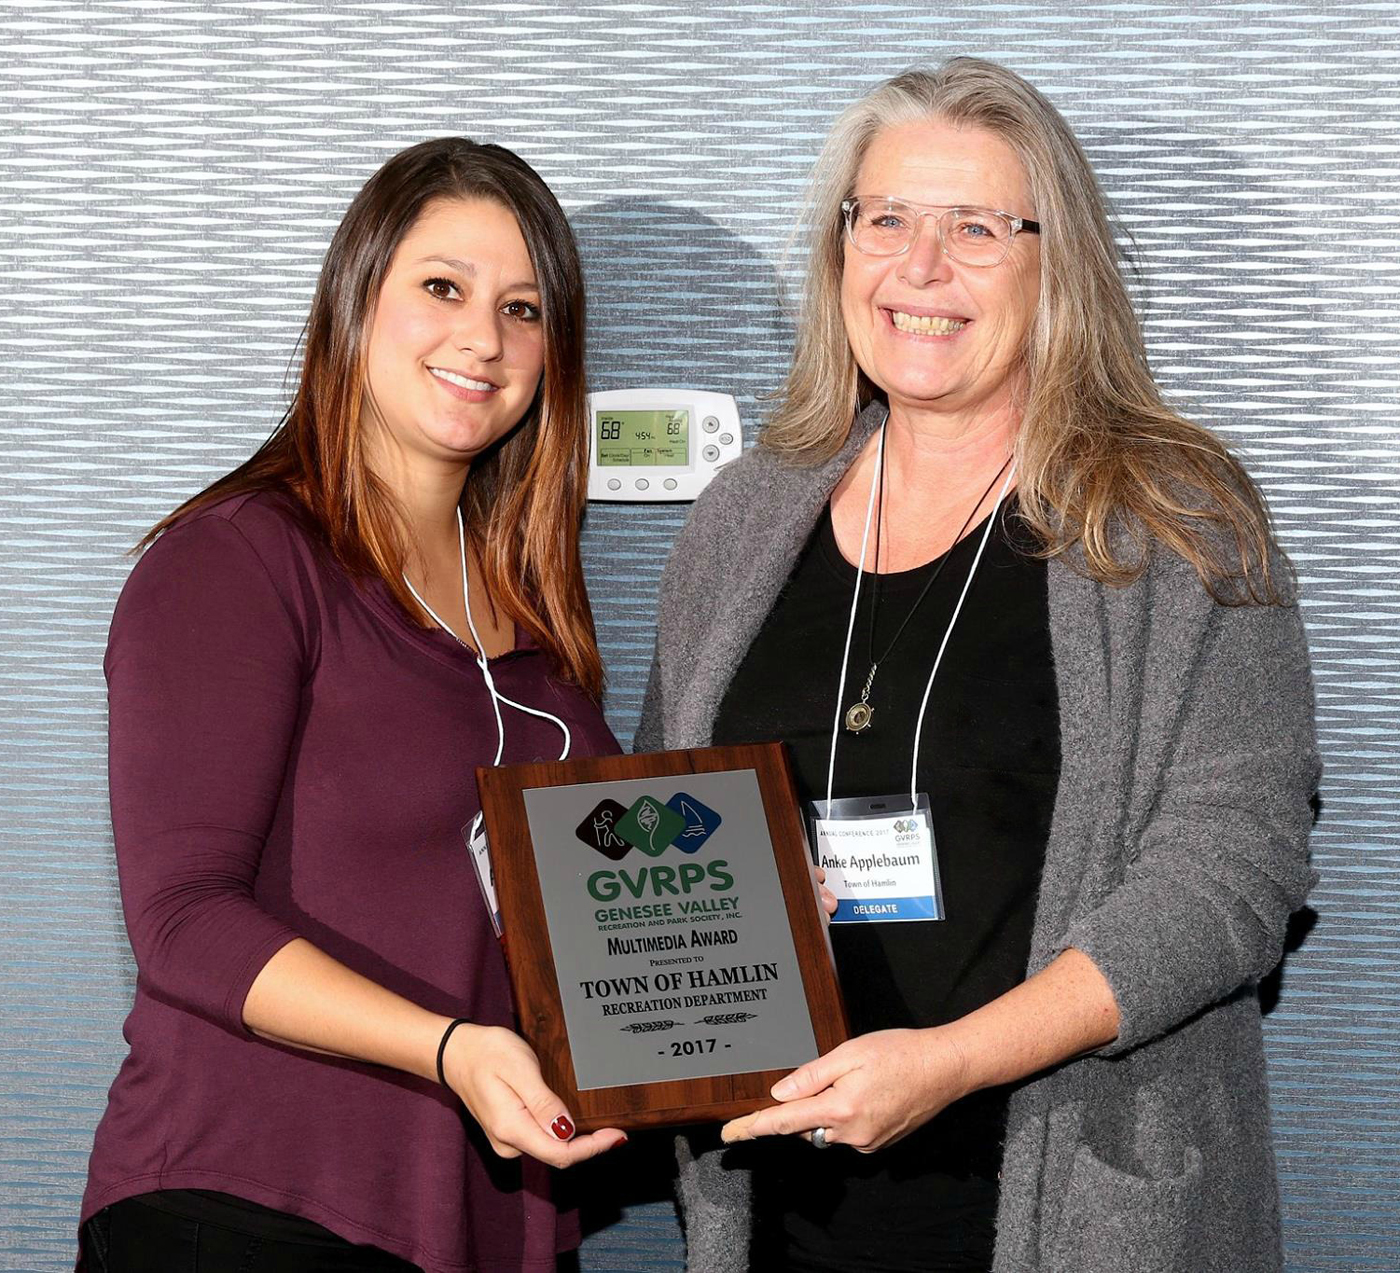 Anke Applebaum (right) receiving the 2017 GVRPS Multimedia Award for the Town of Hamlin. Provided photo